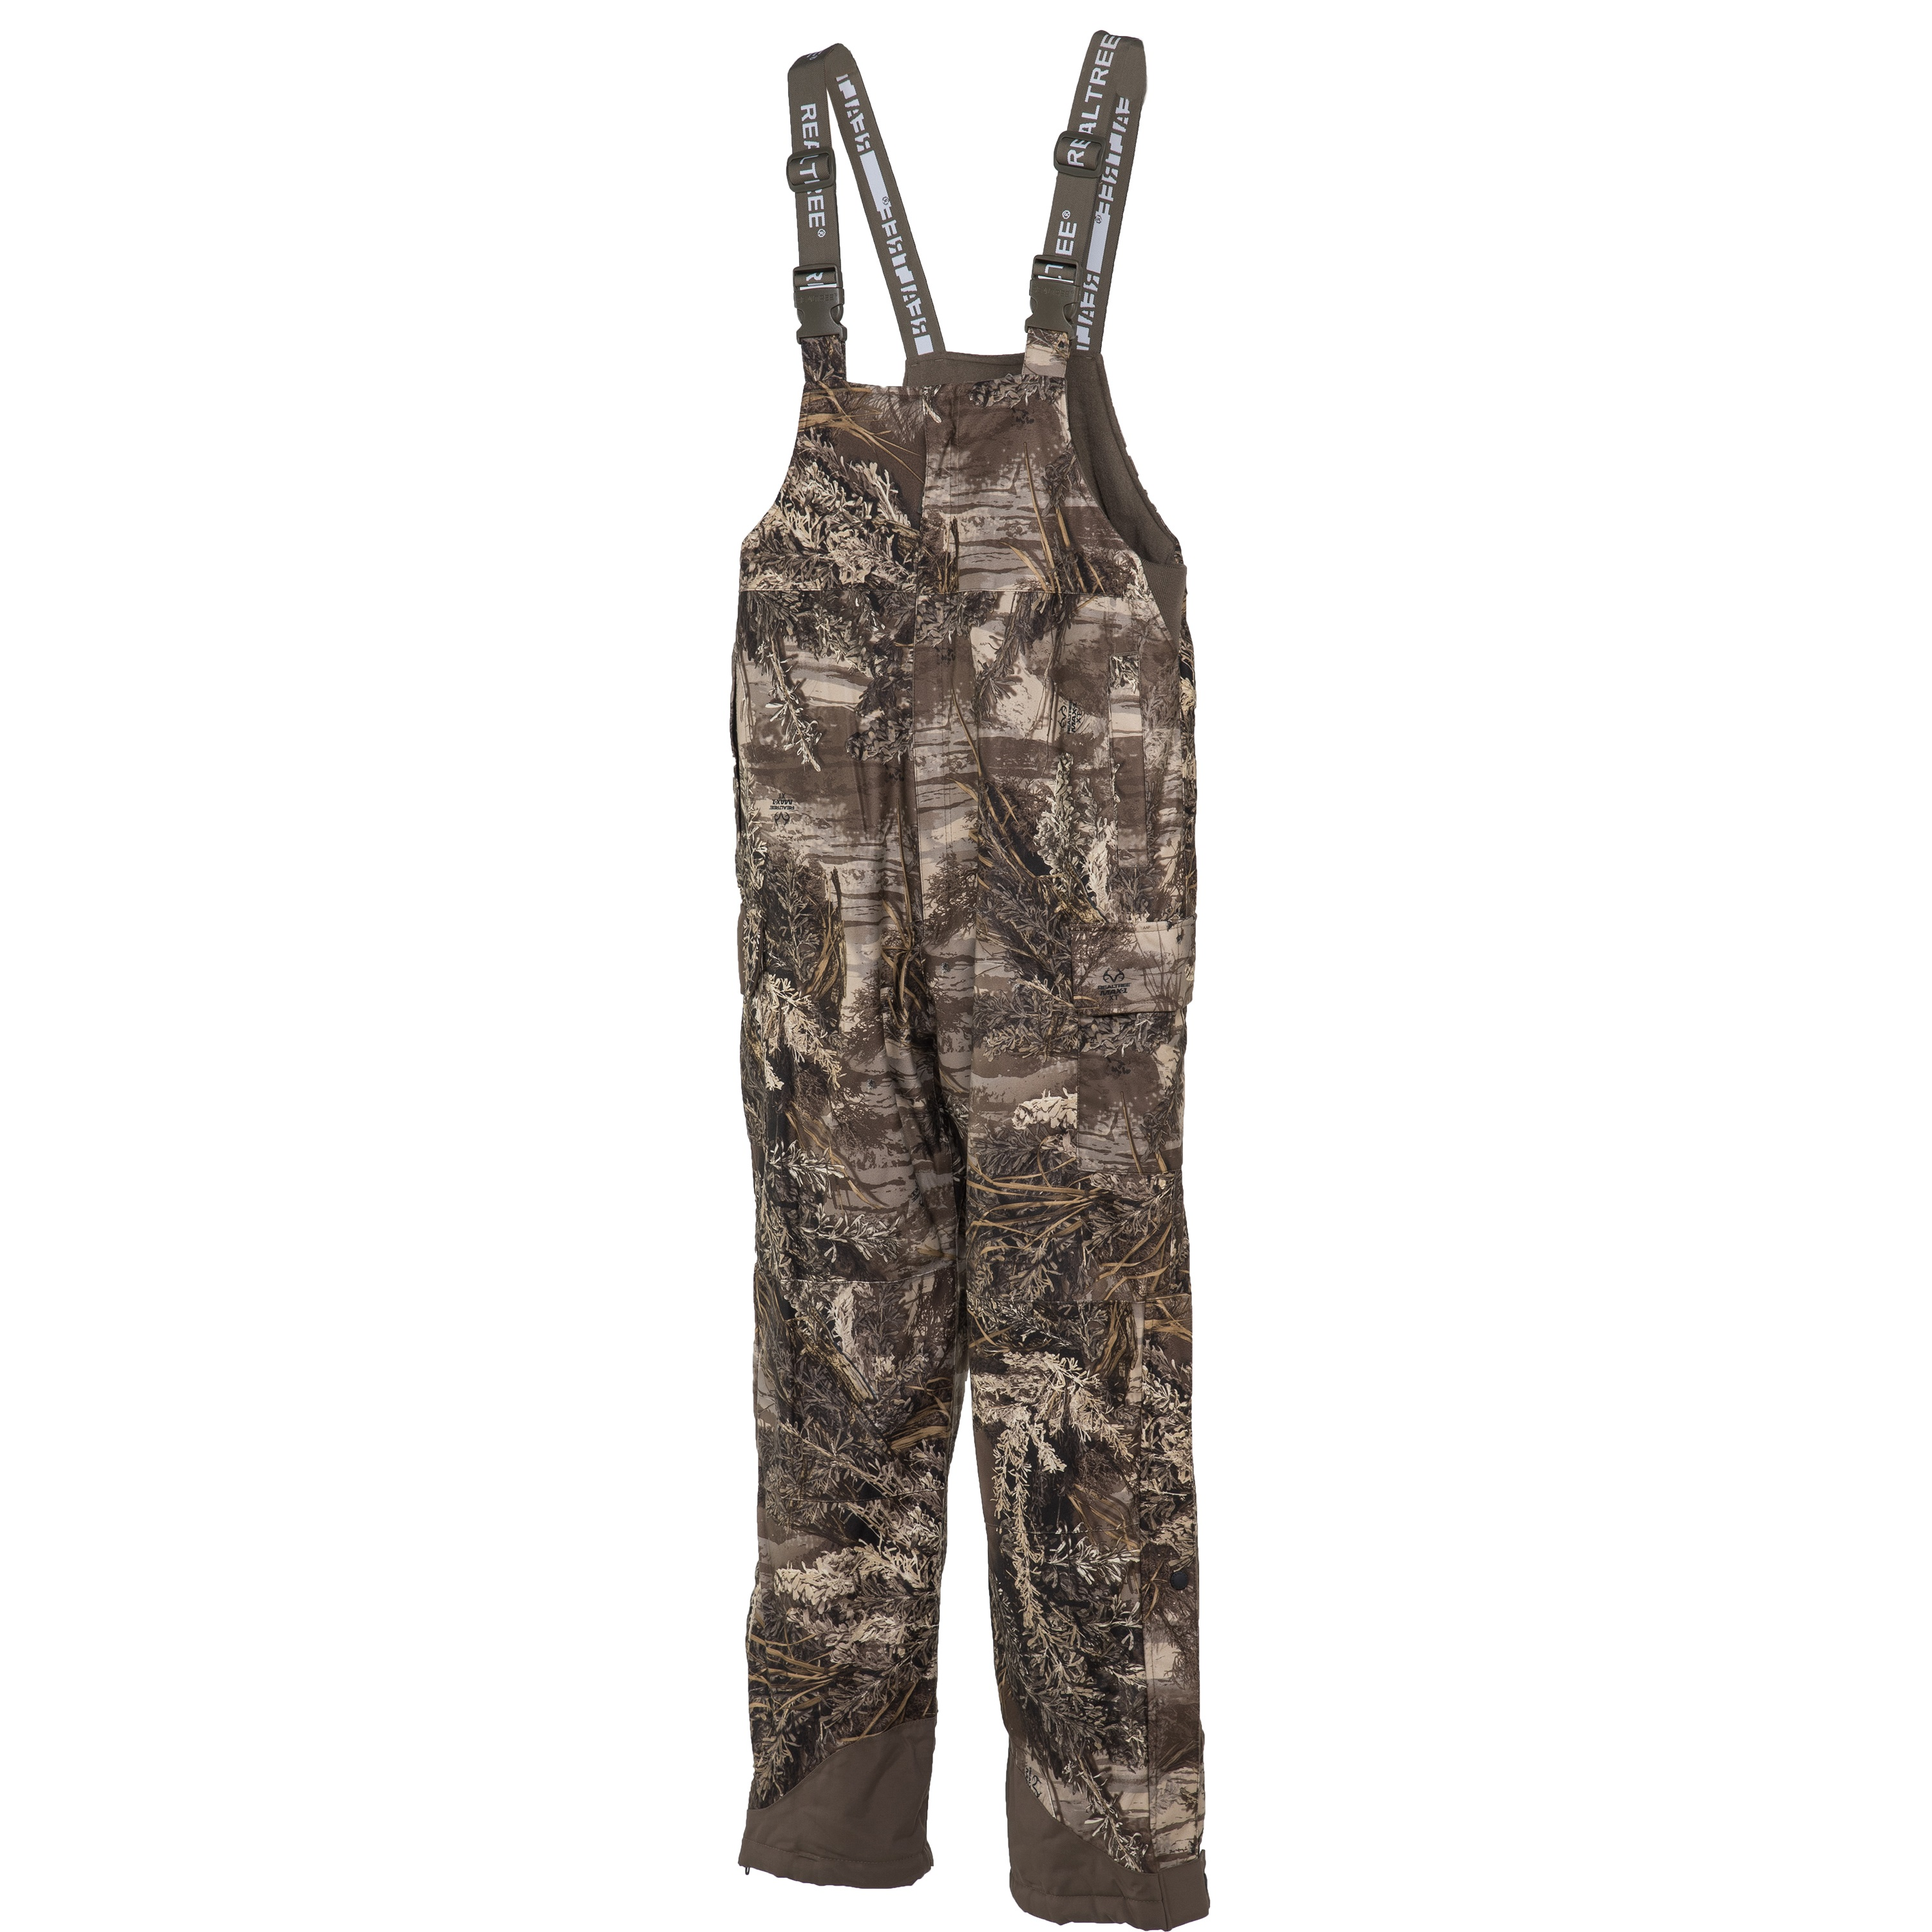 Realtree Xtra Men's Insulated Bibs by LUCKY ZONE DESIGN